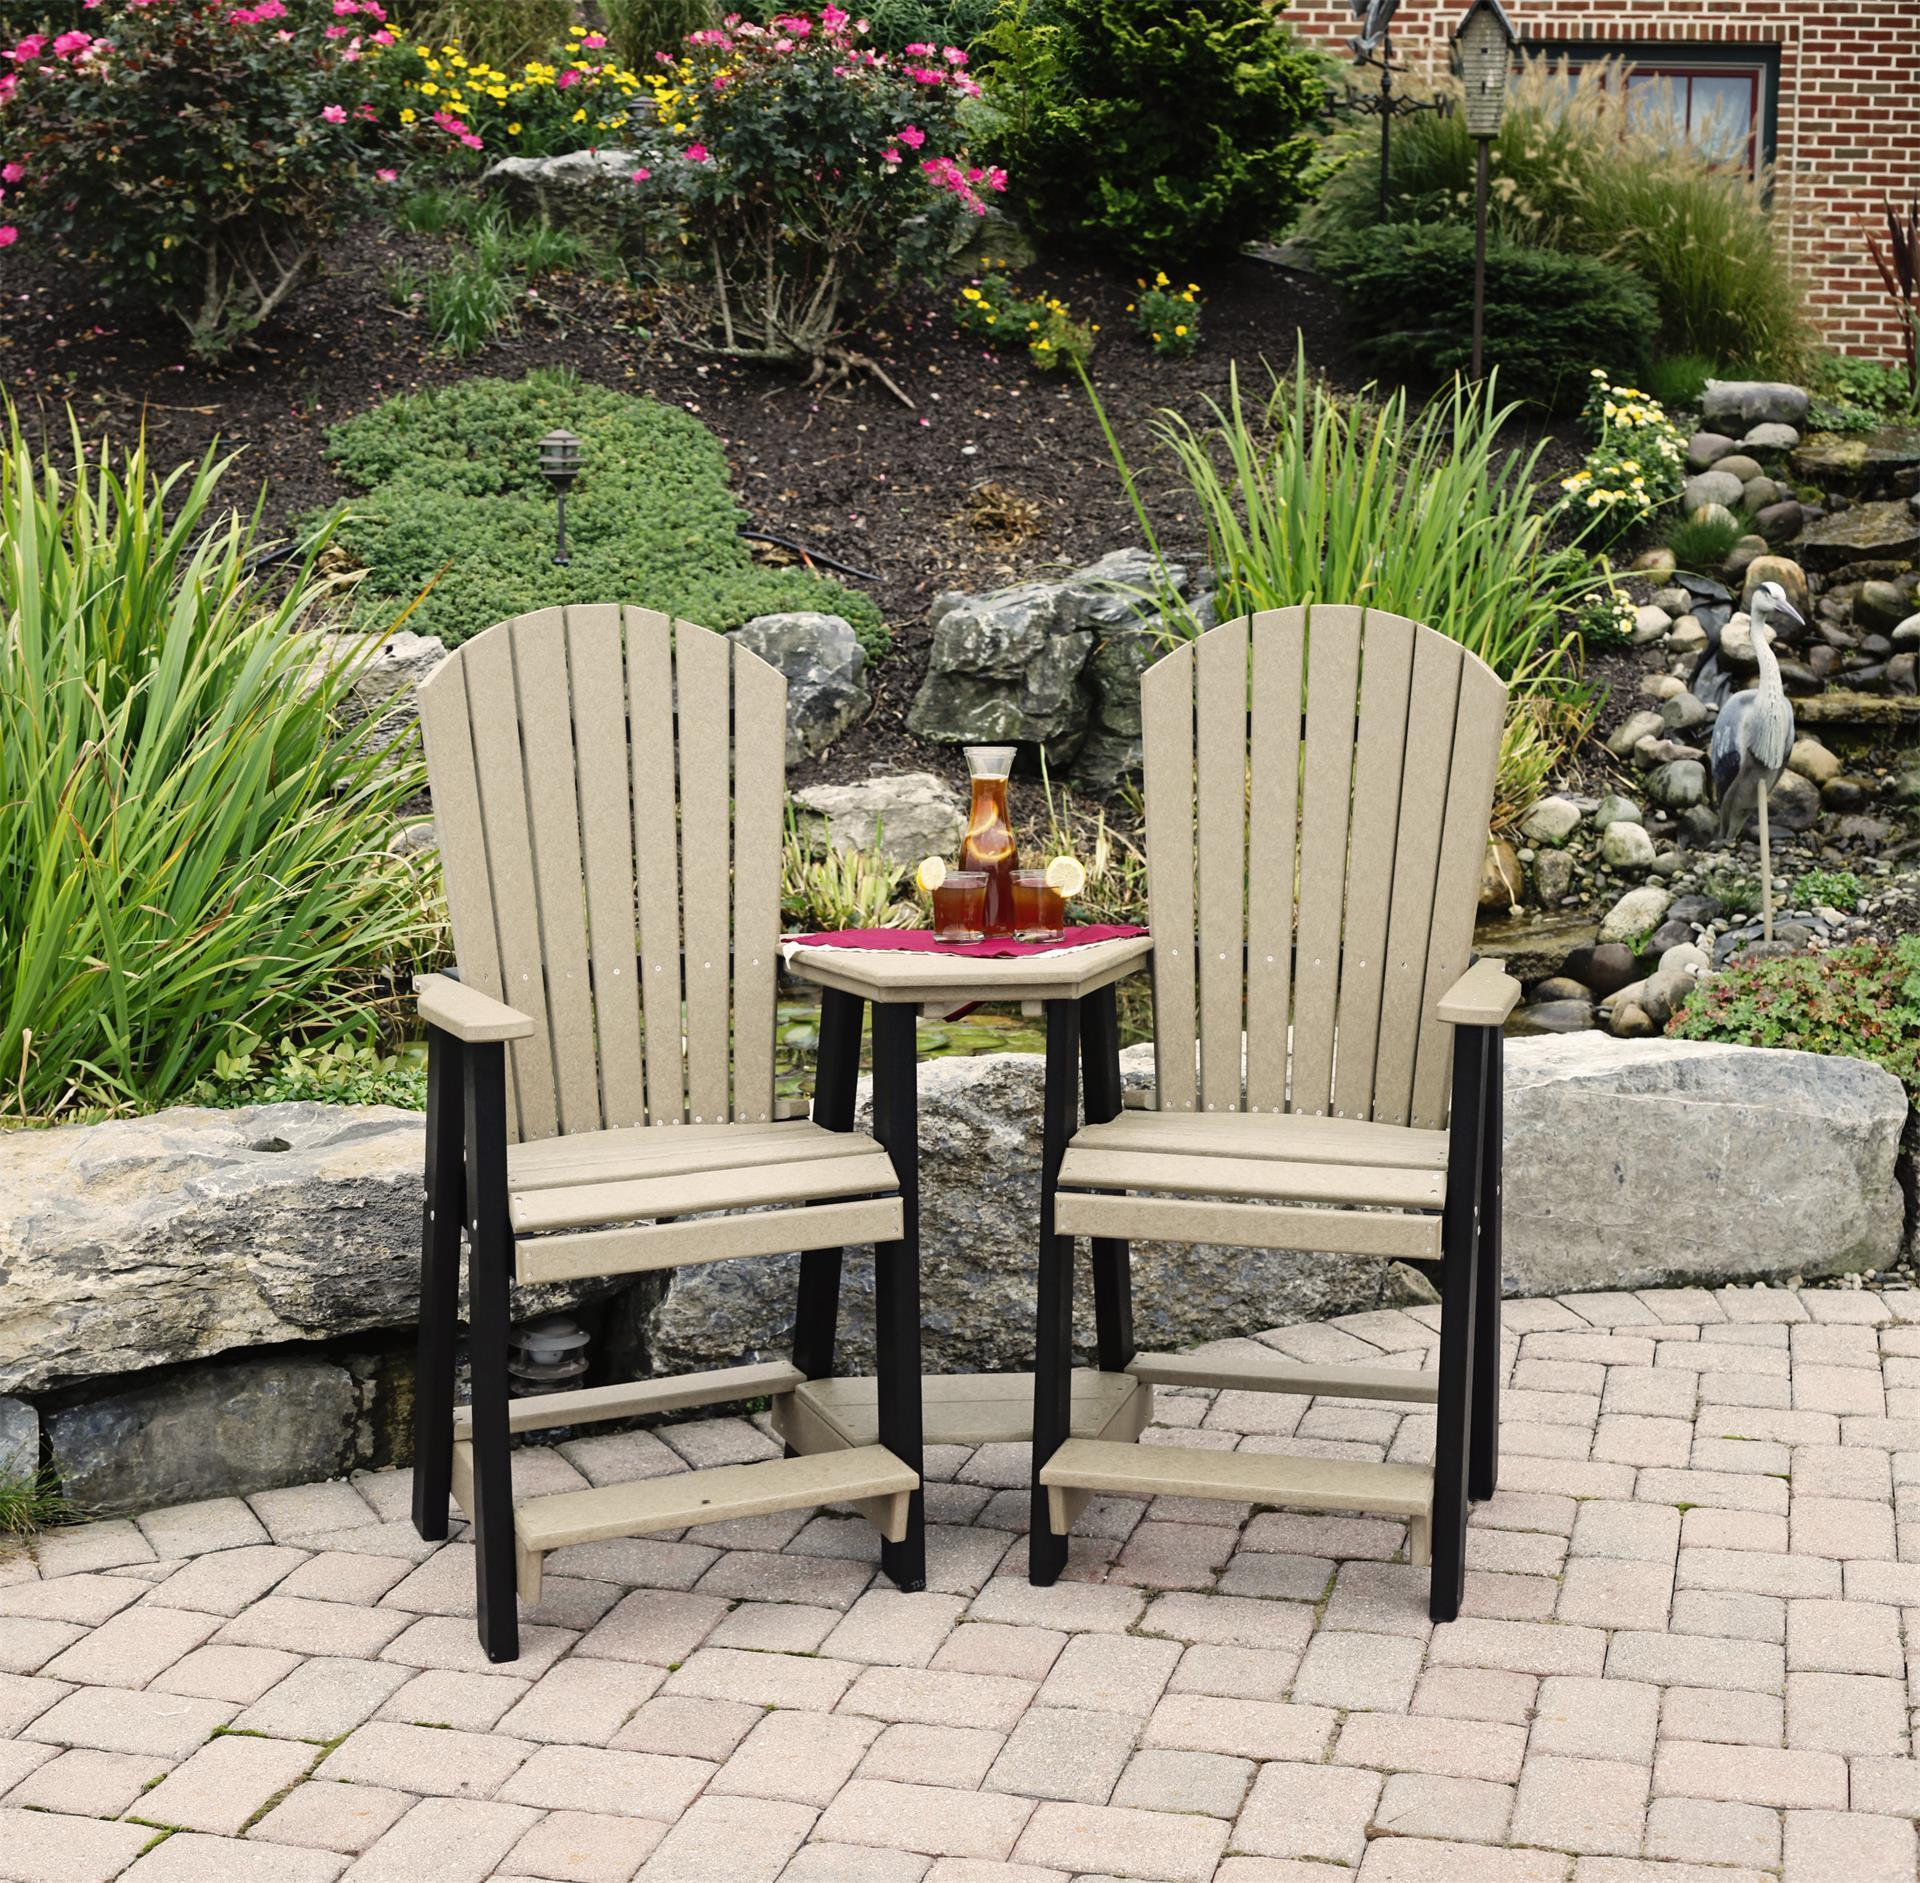 Polywood Patio Furniture Sale: Leisure Lawns Poly Balcony Settee From DutchCrafters Amish